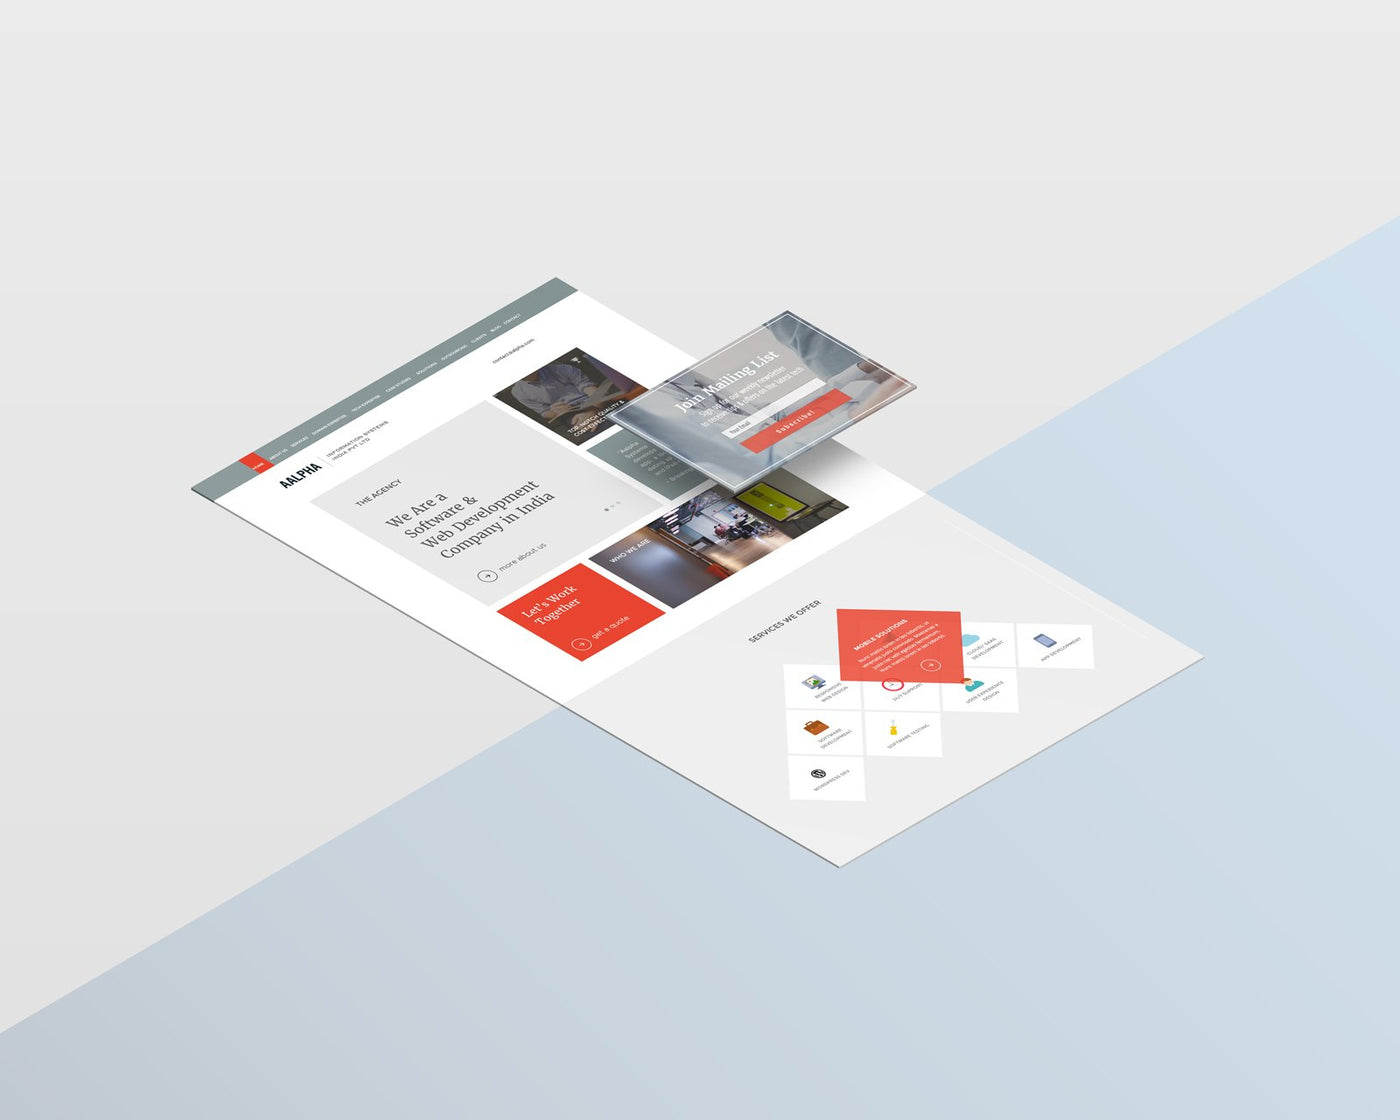 Website & UI design for IT company